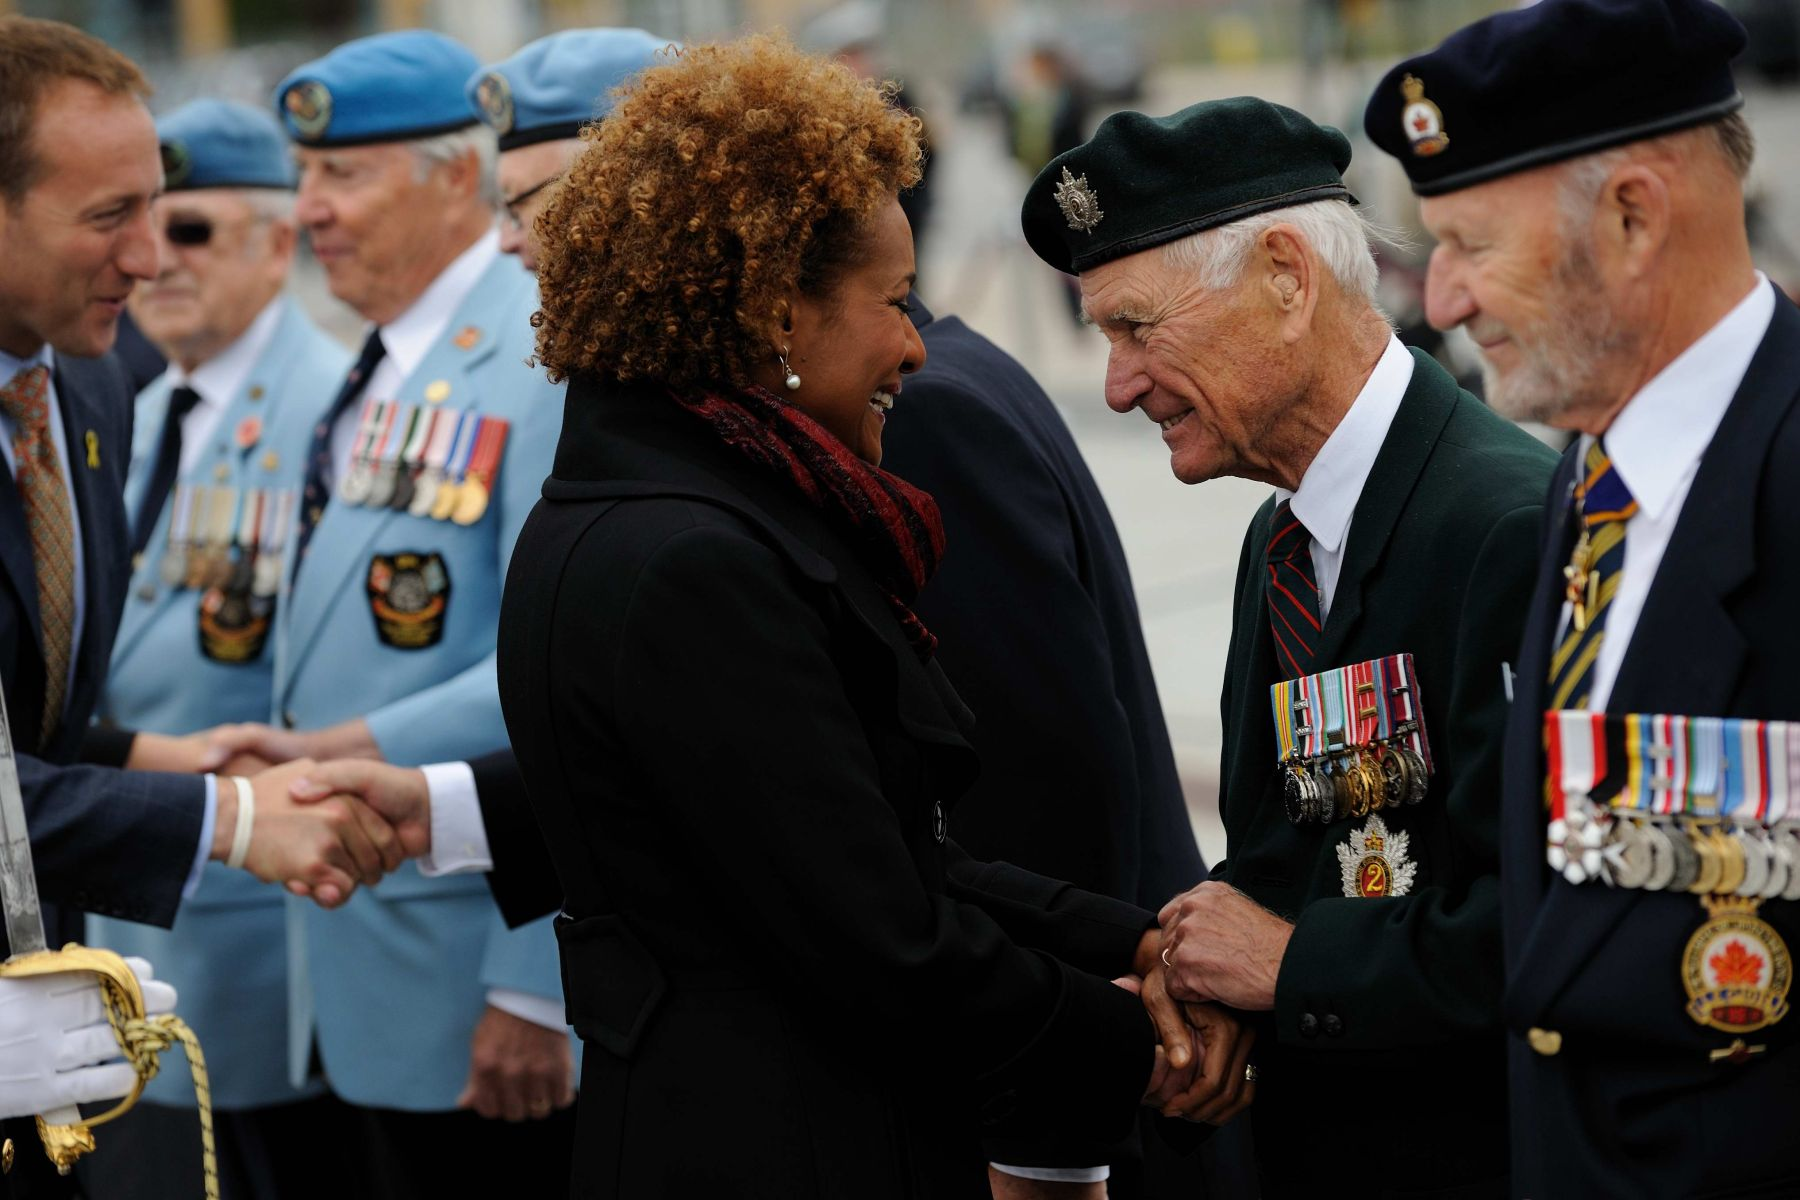 The guard of honour also included veterans. Here, the Governor General took the time to exchange a few words with Veteran John Saunders.